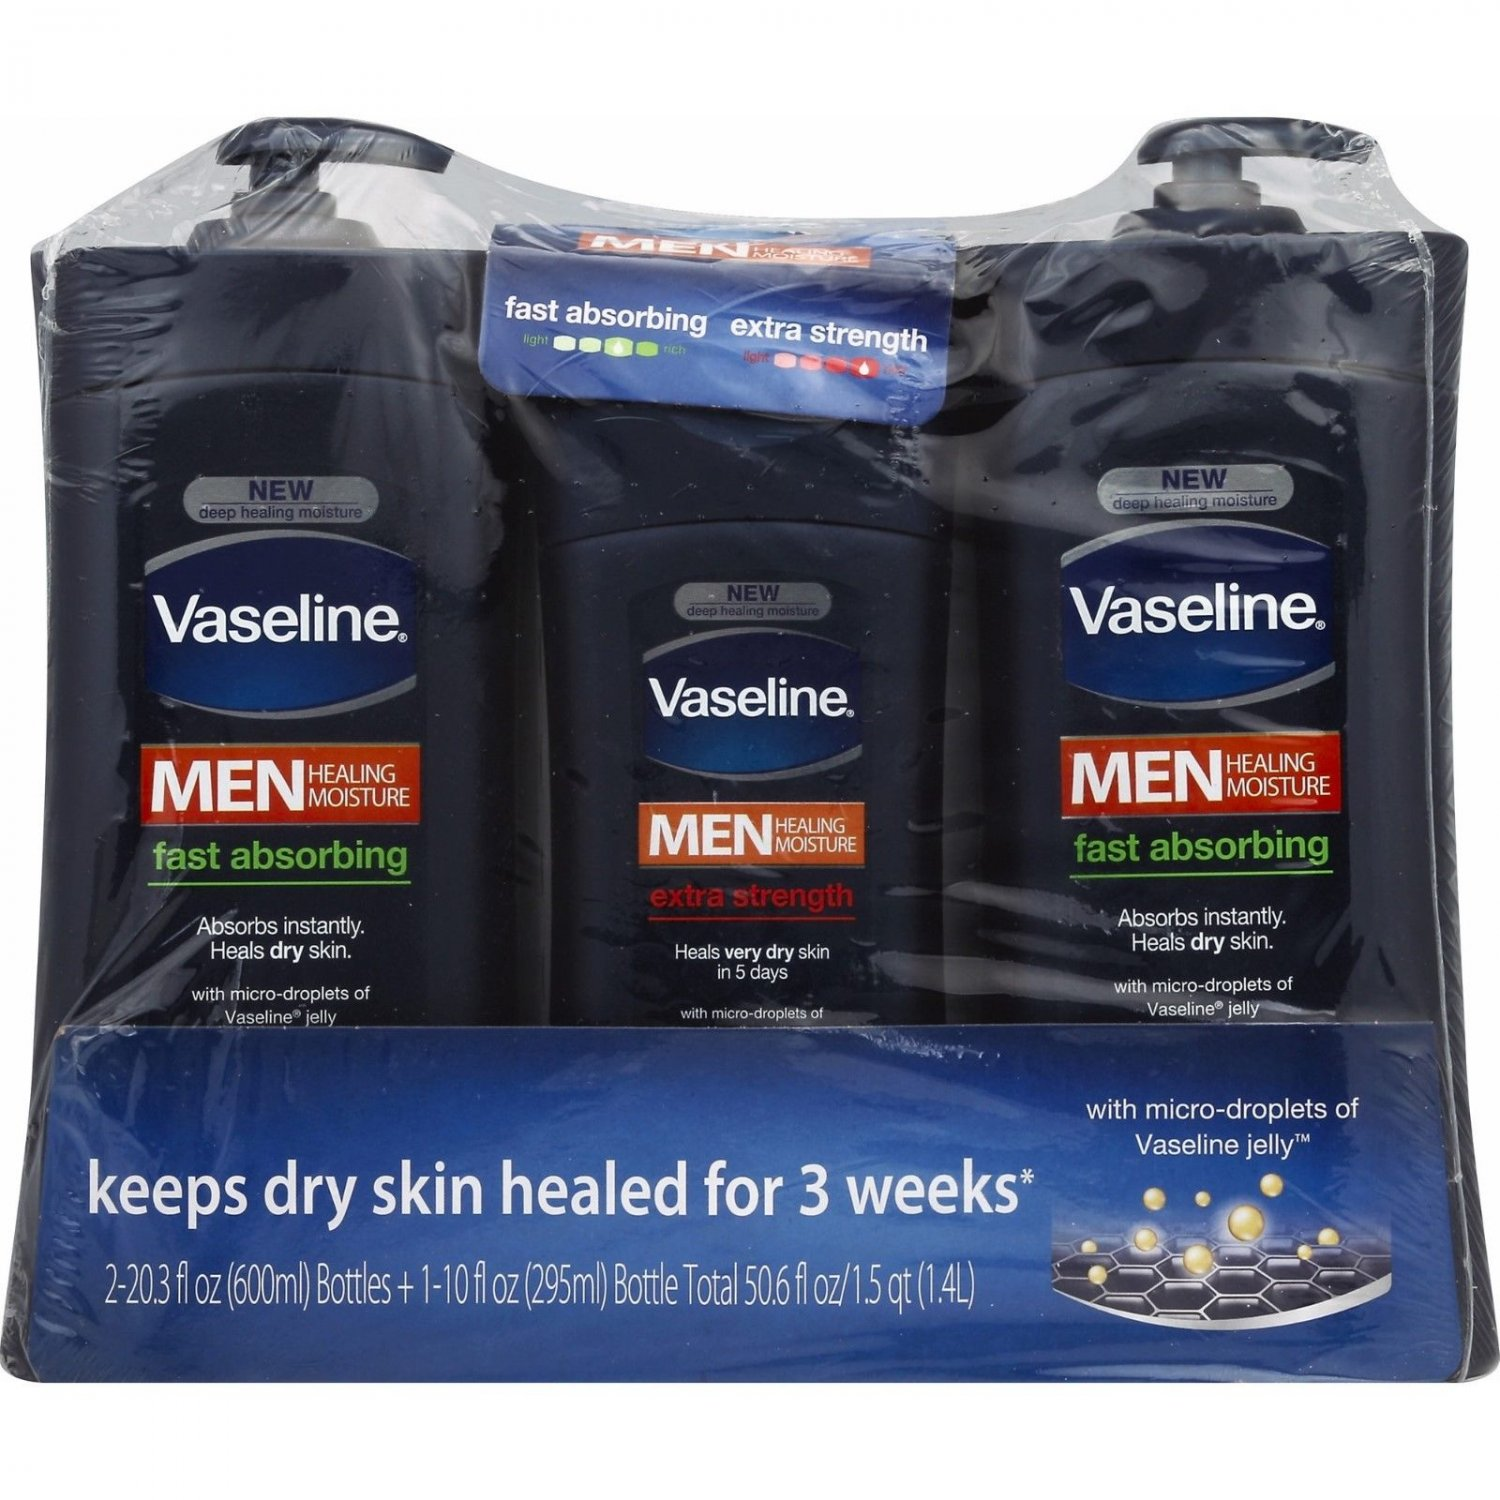 Vaseline Men's Fast Absorbing and Extra Strength Body & Face Lotion 20.3 Oz NEW